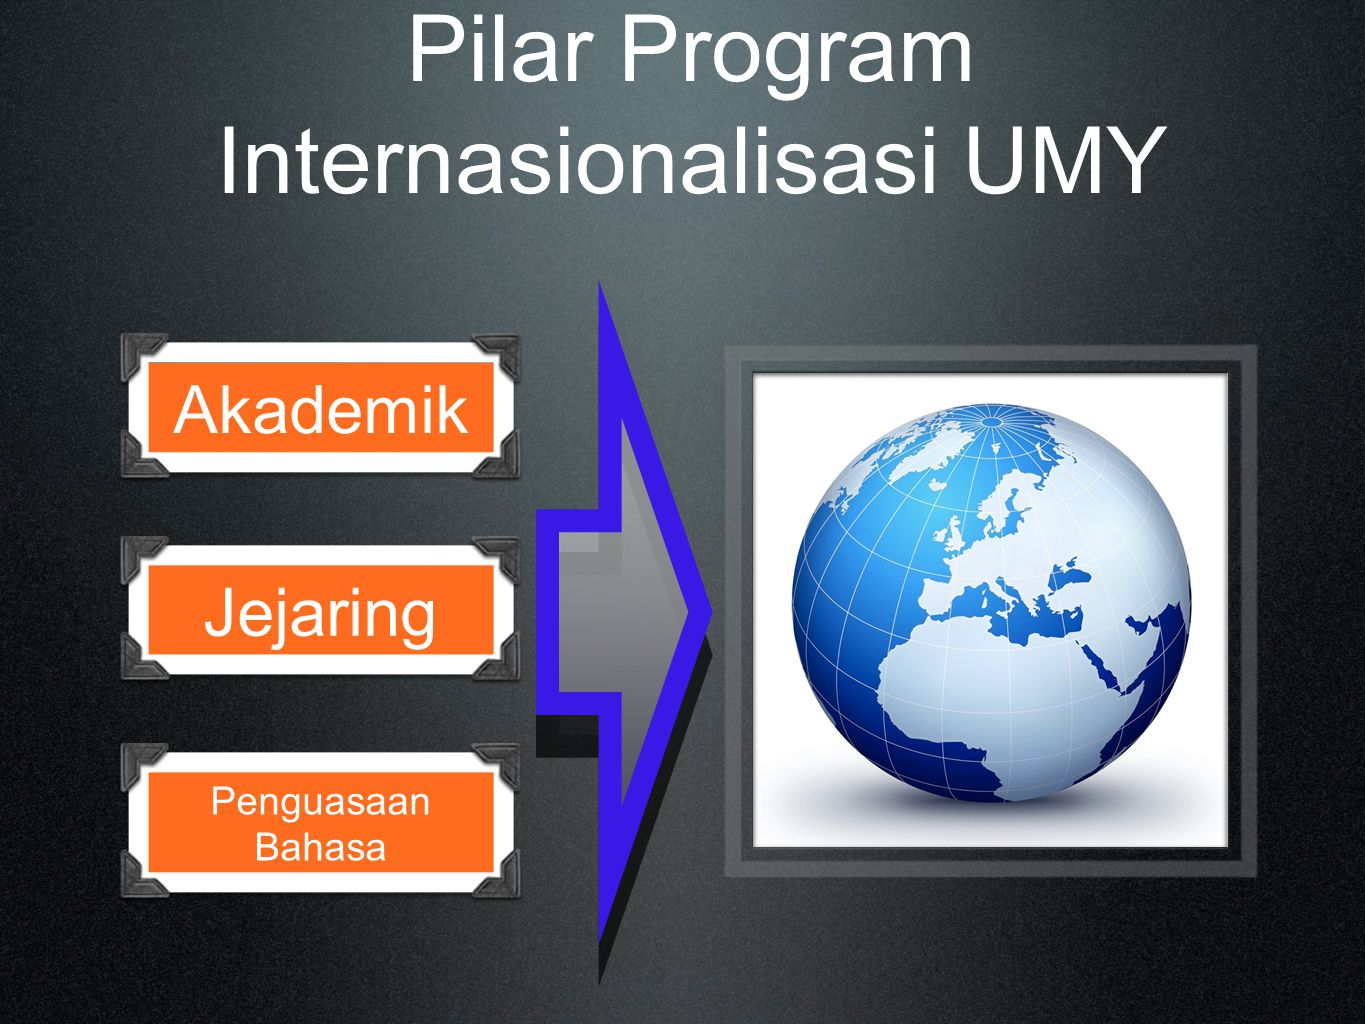 Pilar Program Internasionalisasi UMY